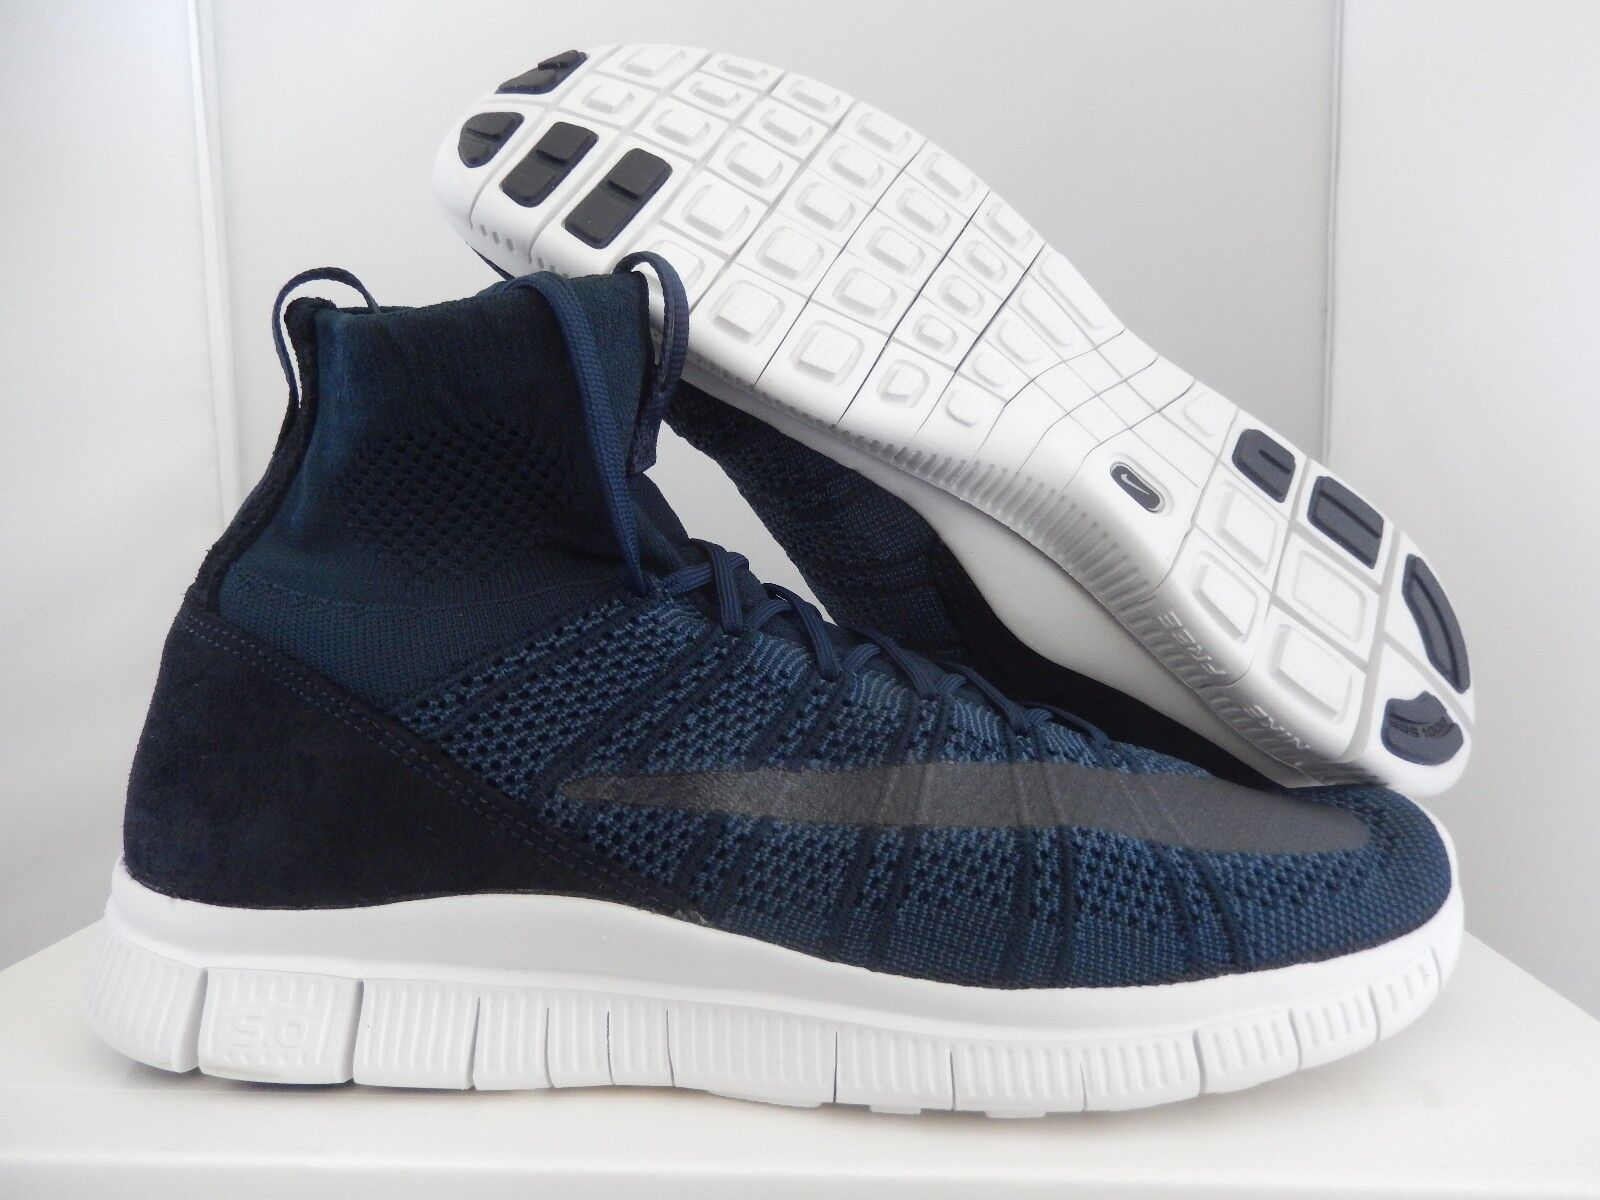 NIKE FREE MERCURIAL SUPERFLY SP DARK OBSIDIAN NAVY blu SZ 11 [667978-441]